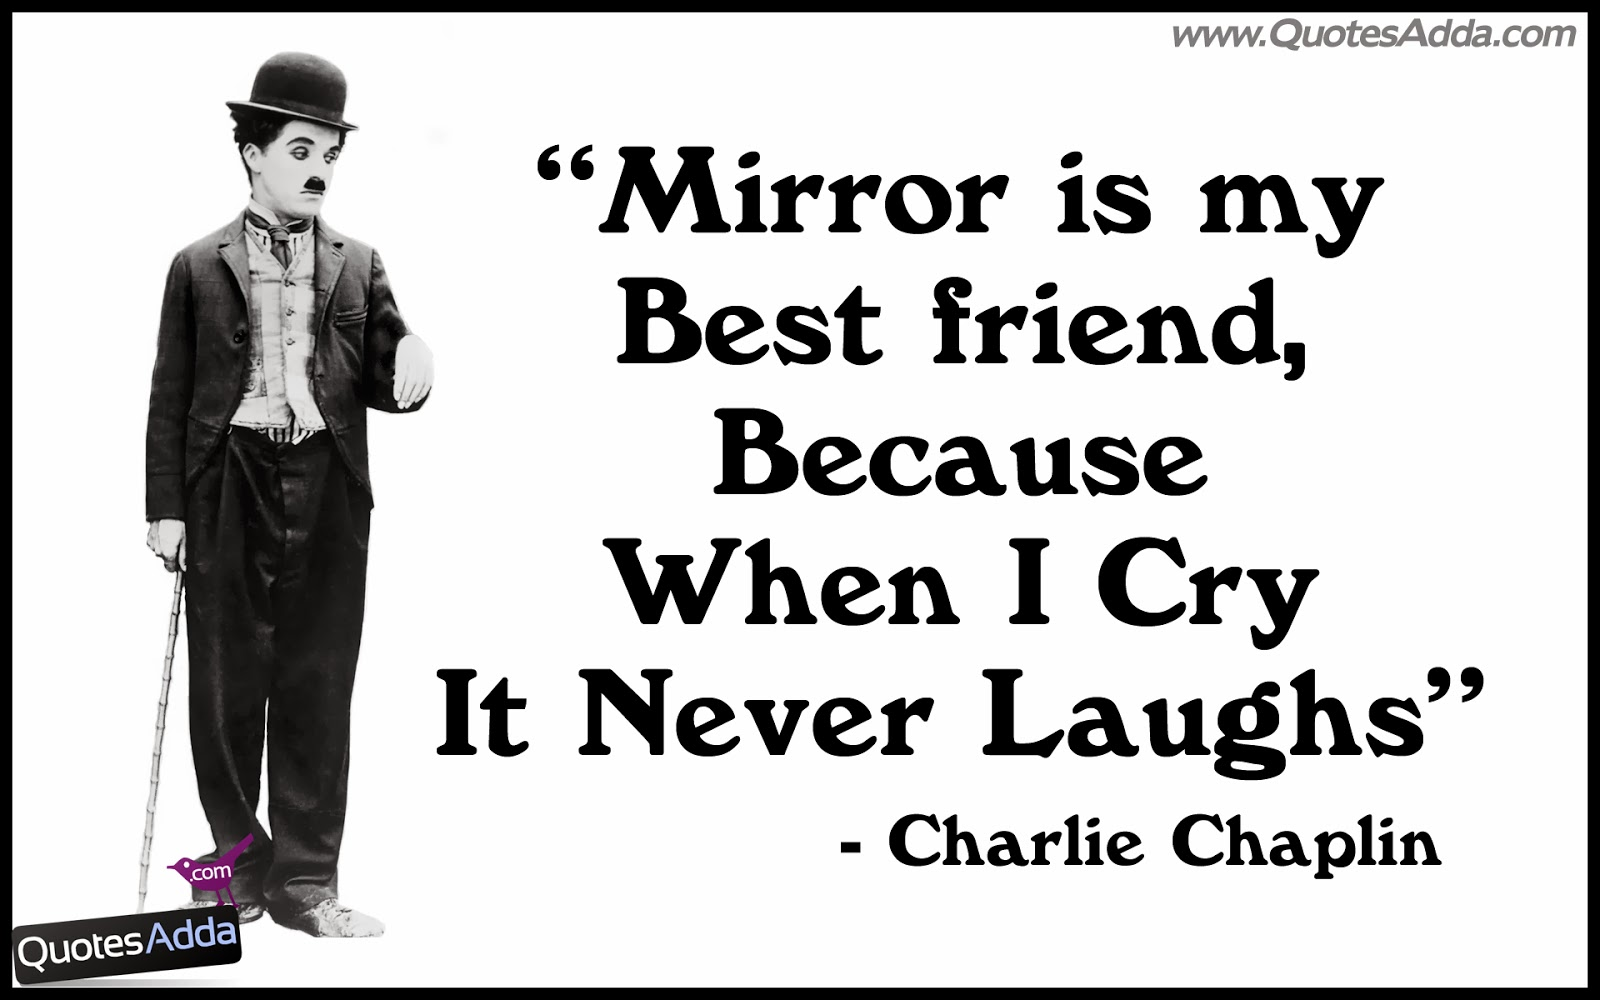 Charlie Chaplin Quotes in English Charlie Chaplin Wallpapers 1600x1000